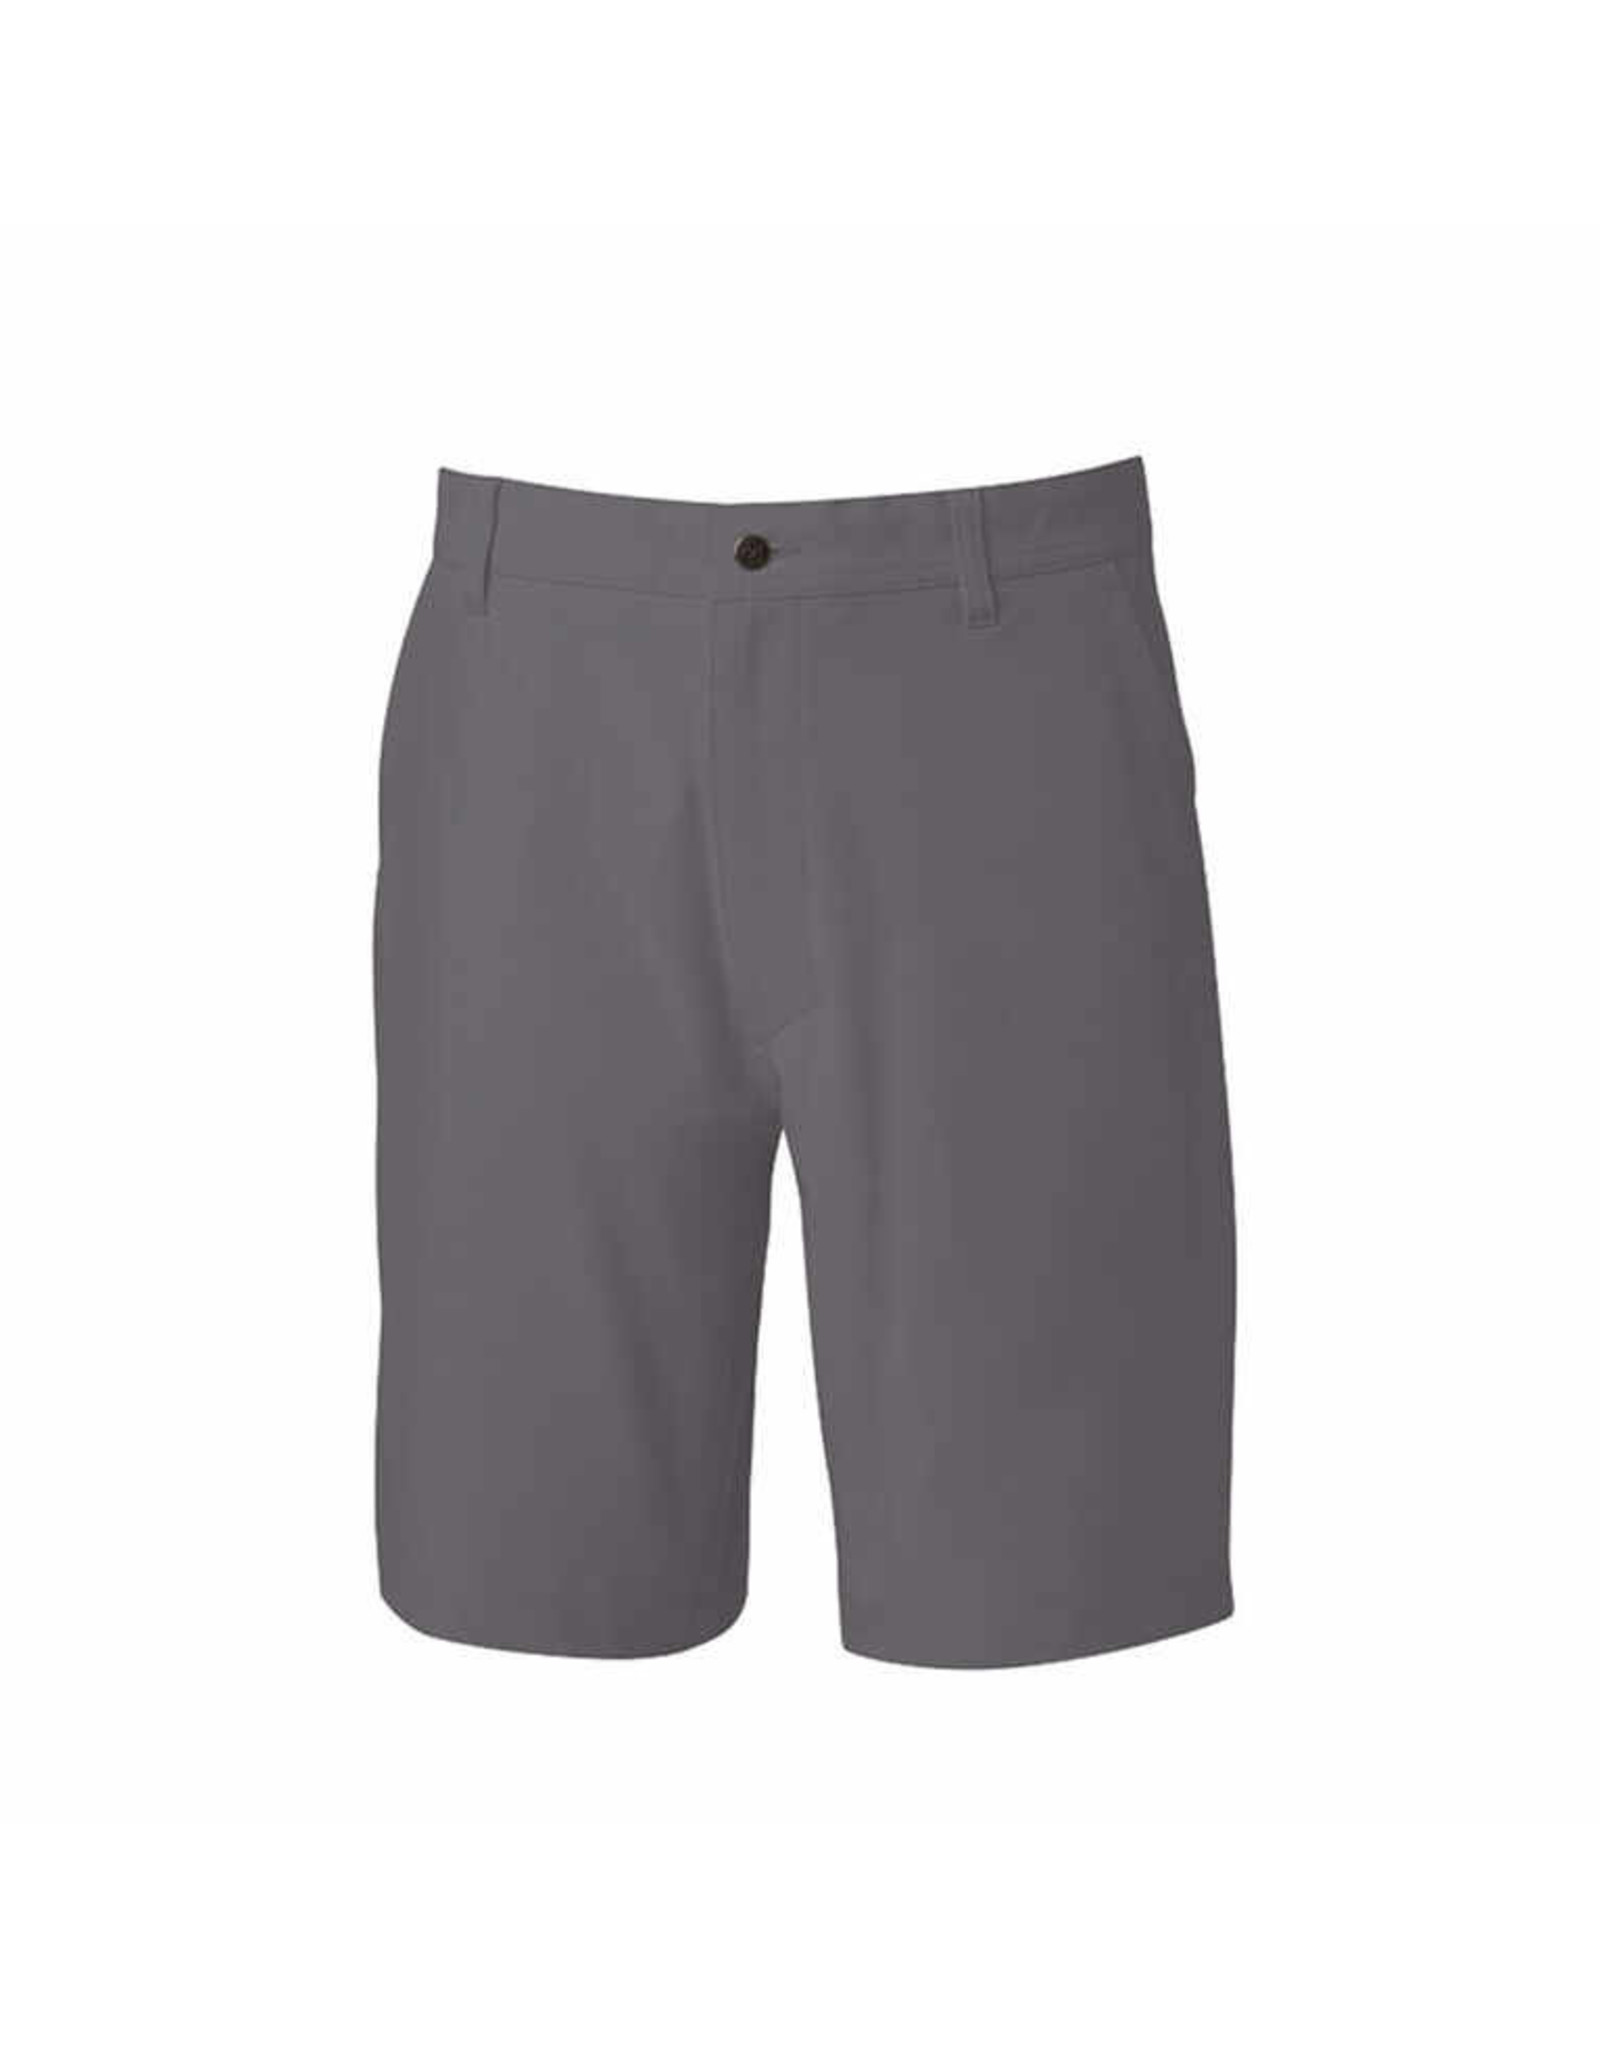 Footjoy FJ Men's Perf Short